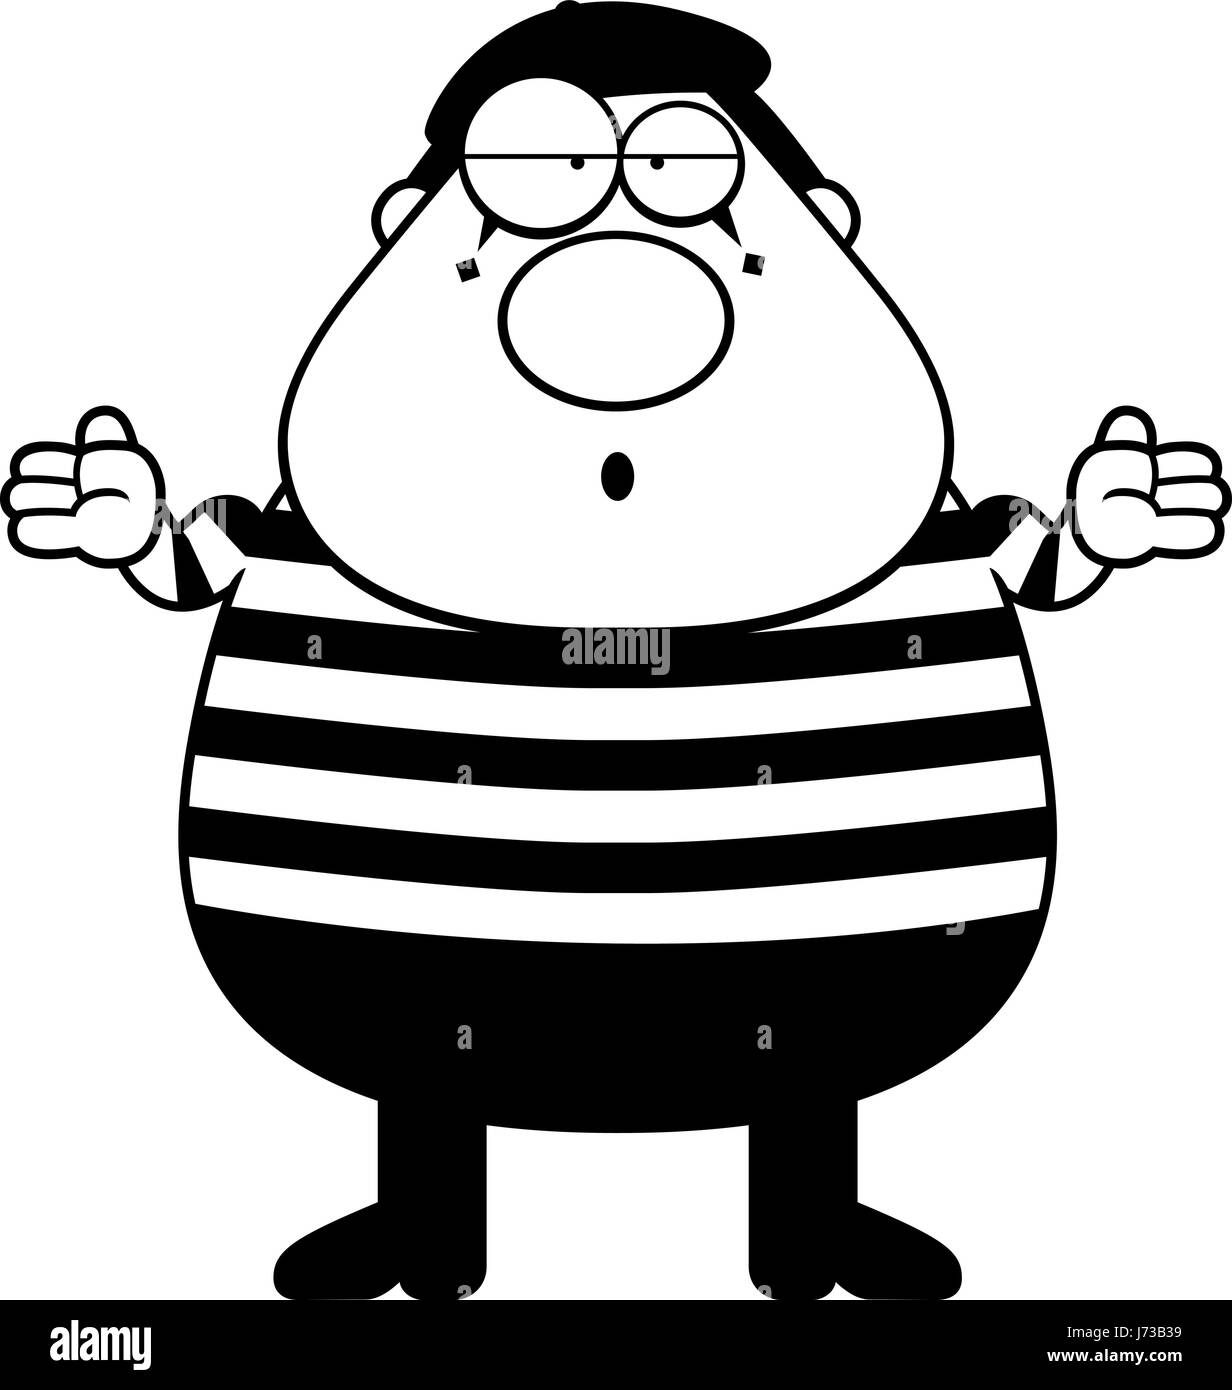 A cartoon illustration of a mime with a confused expression. - Stock Vector